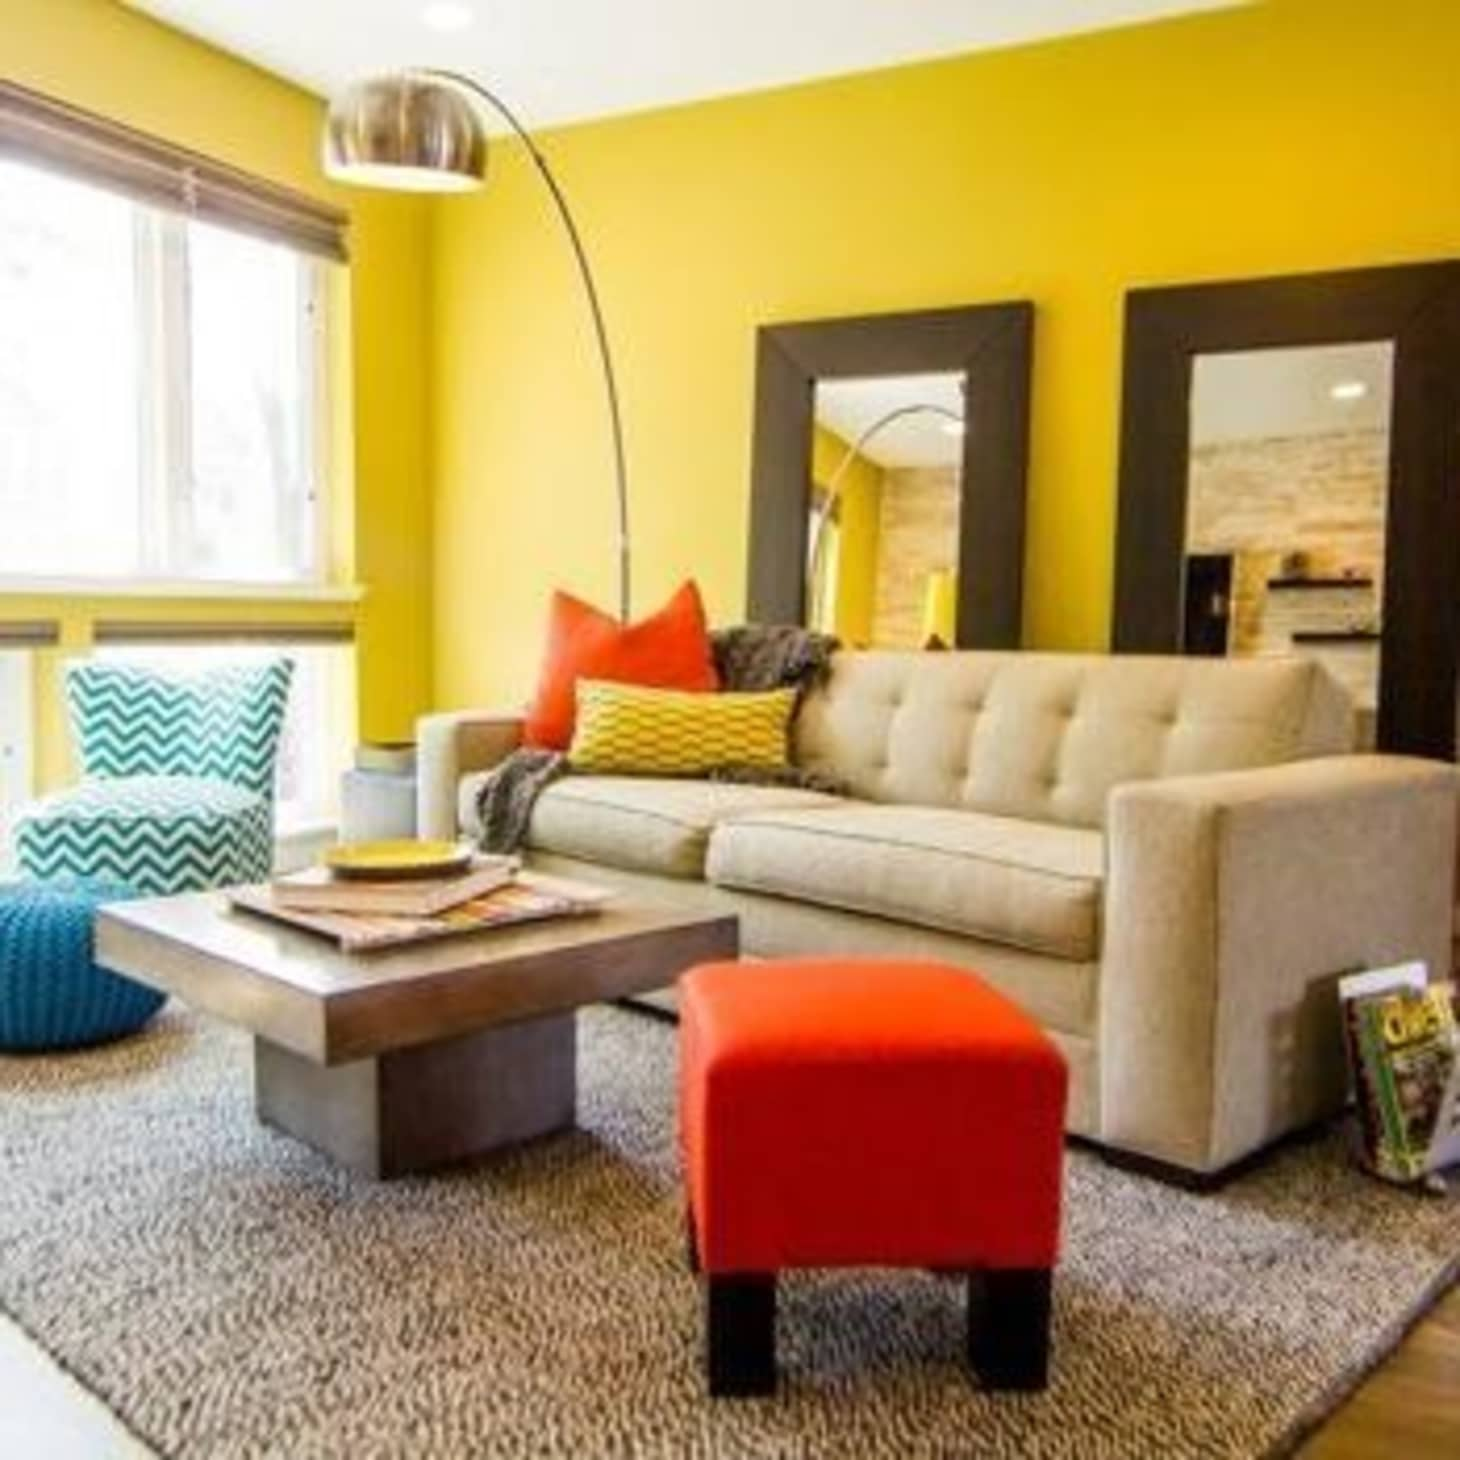 Cool Interior Design: How To Work With Warm & Cool Colors